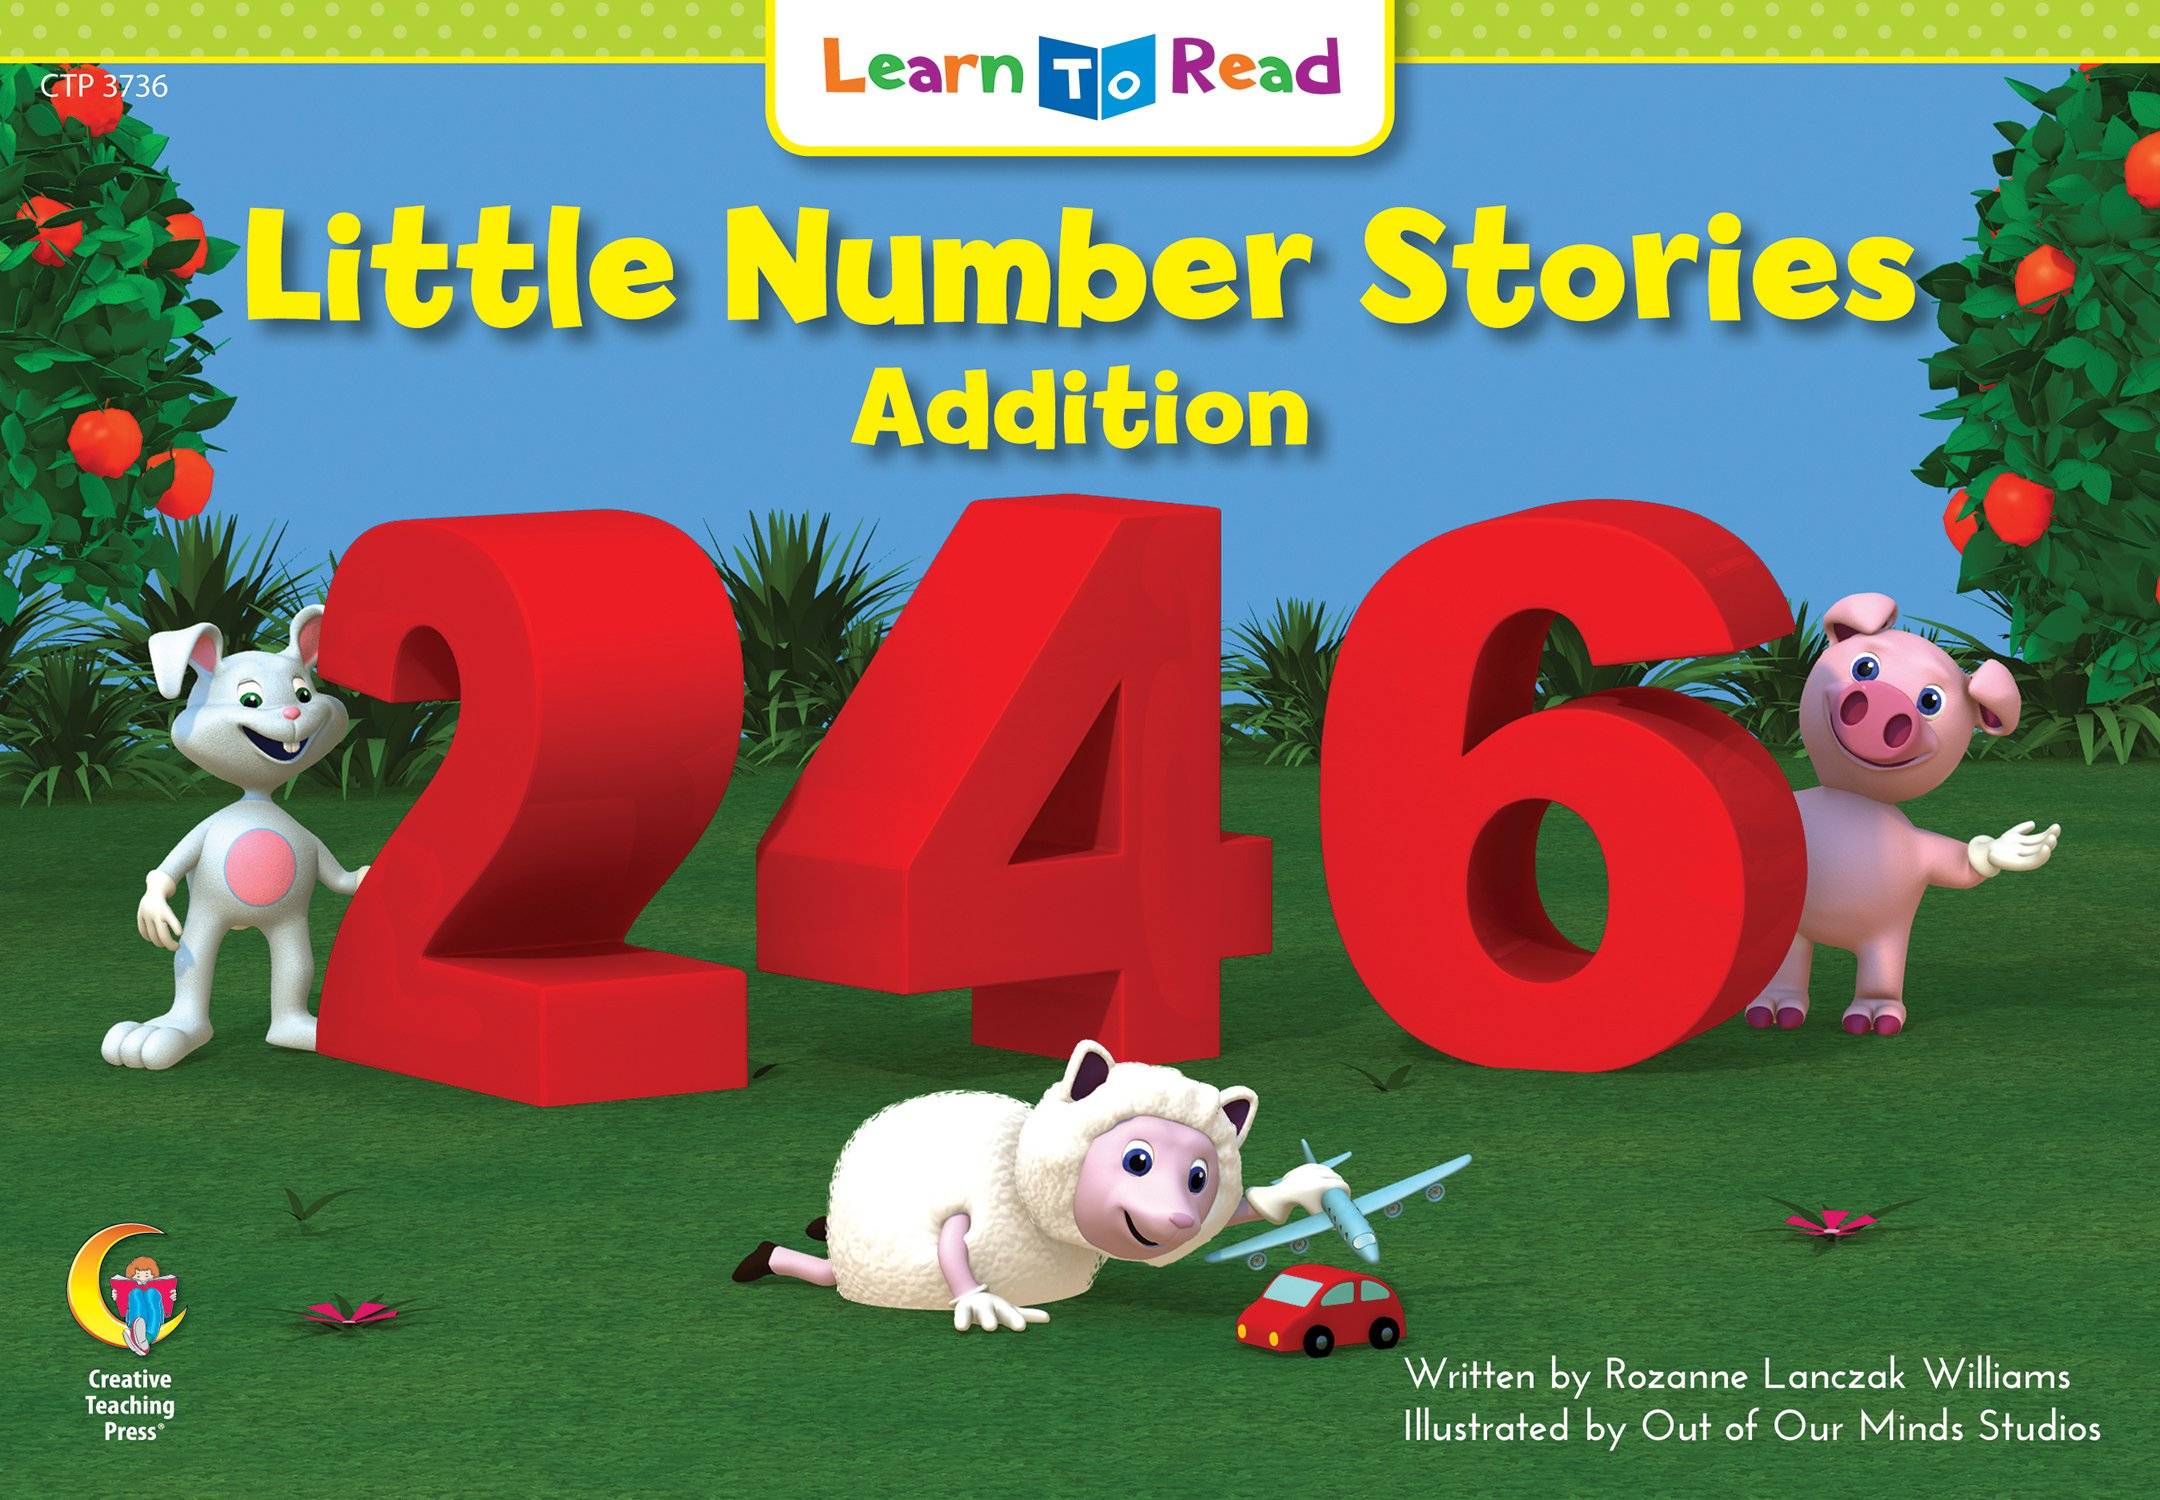 Little Number Stories Addition (Learn to Read Math Series)